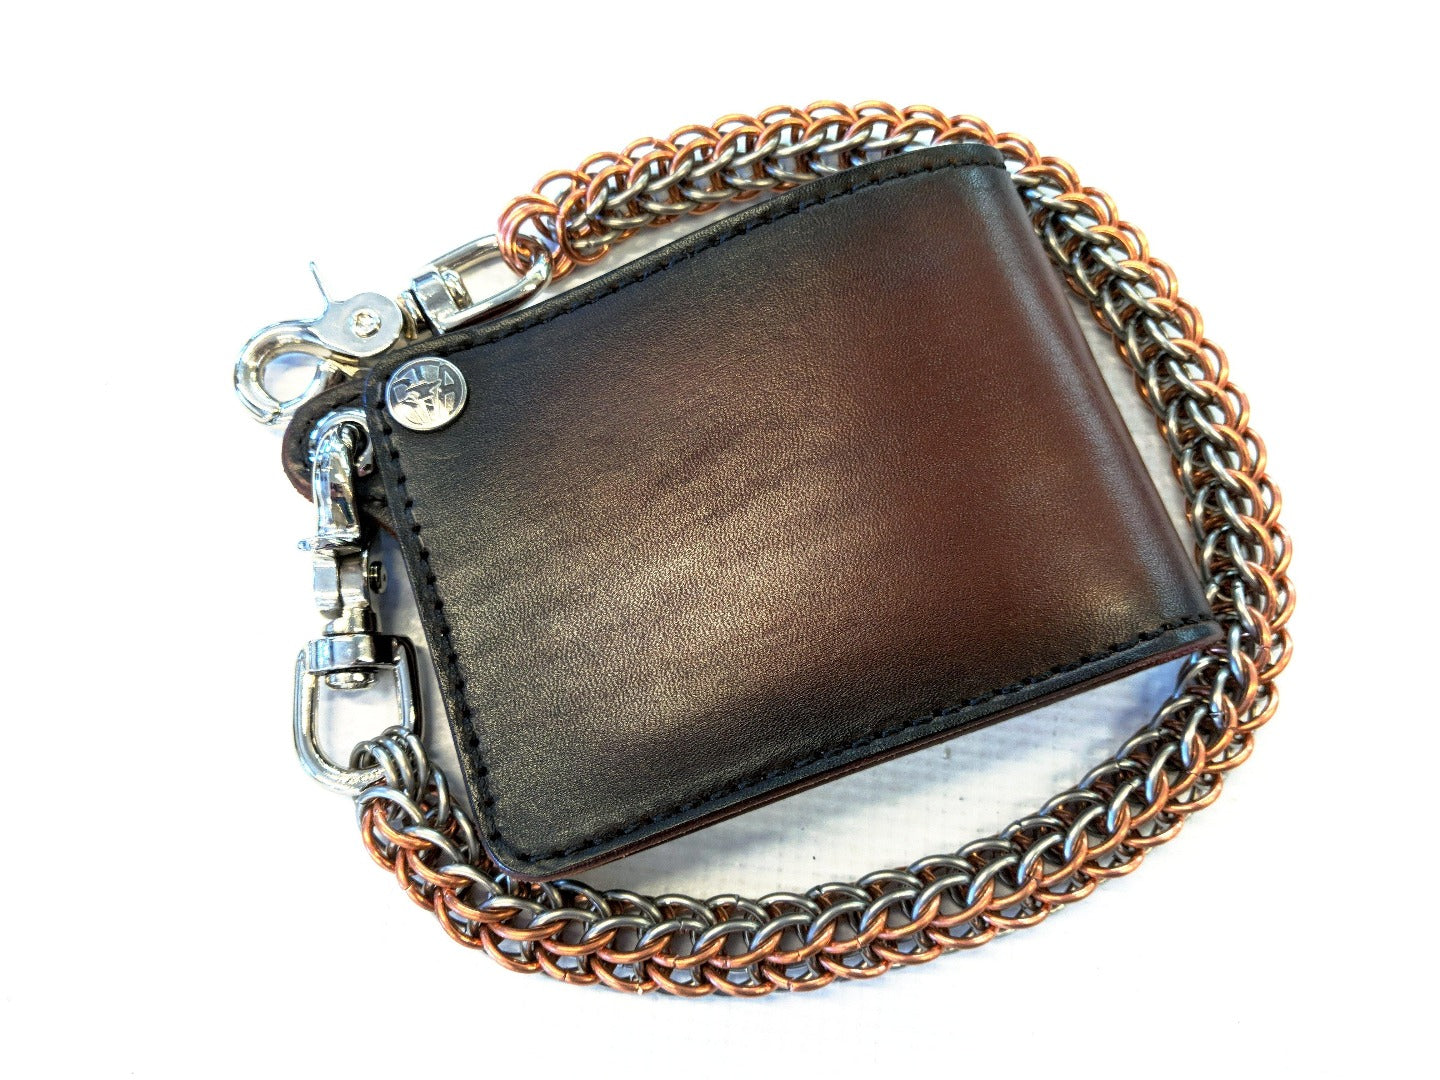 Bifold Leather Chain Wallet - Gen 3 - Anvil Customs